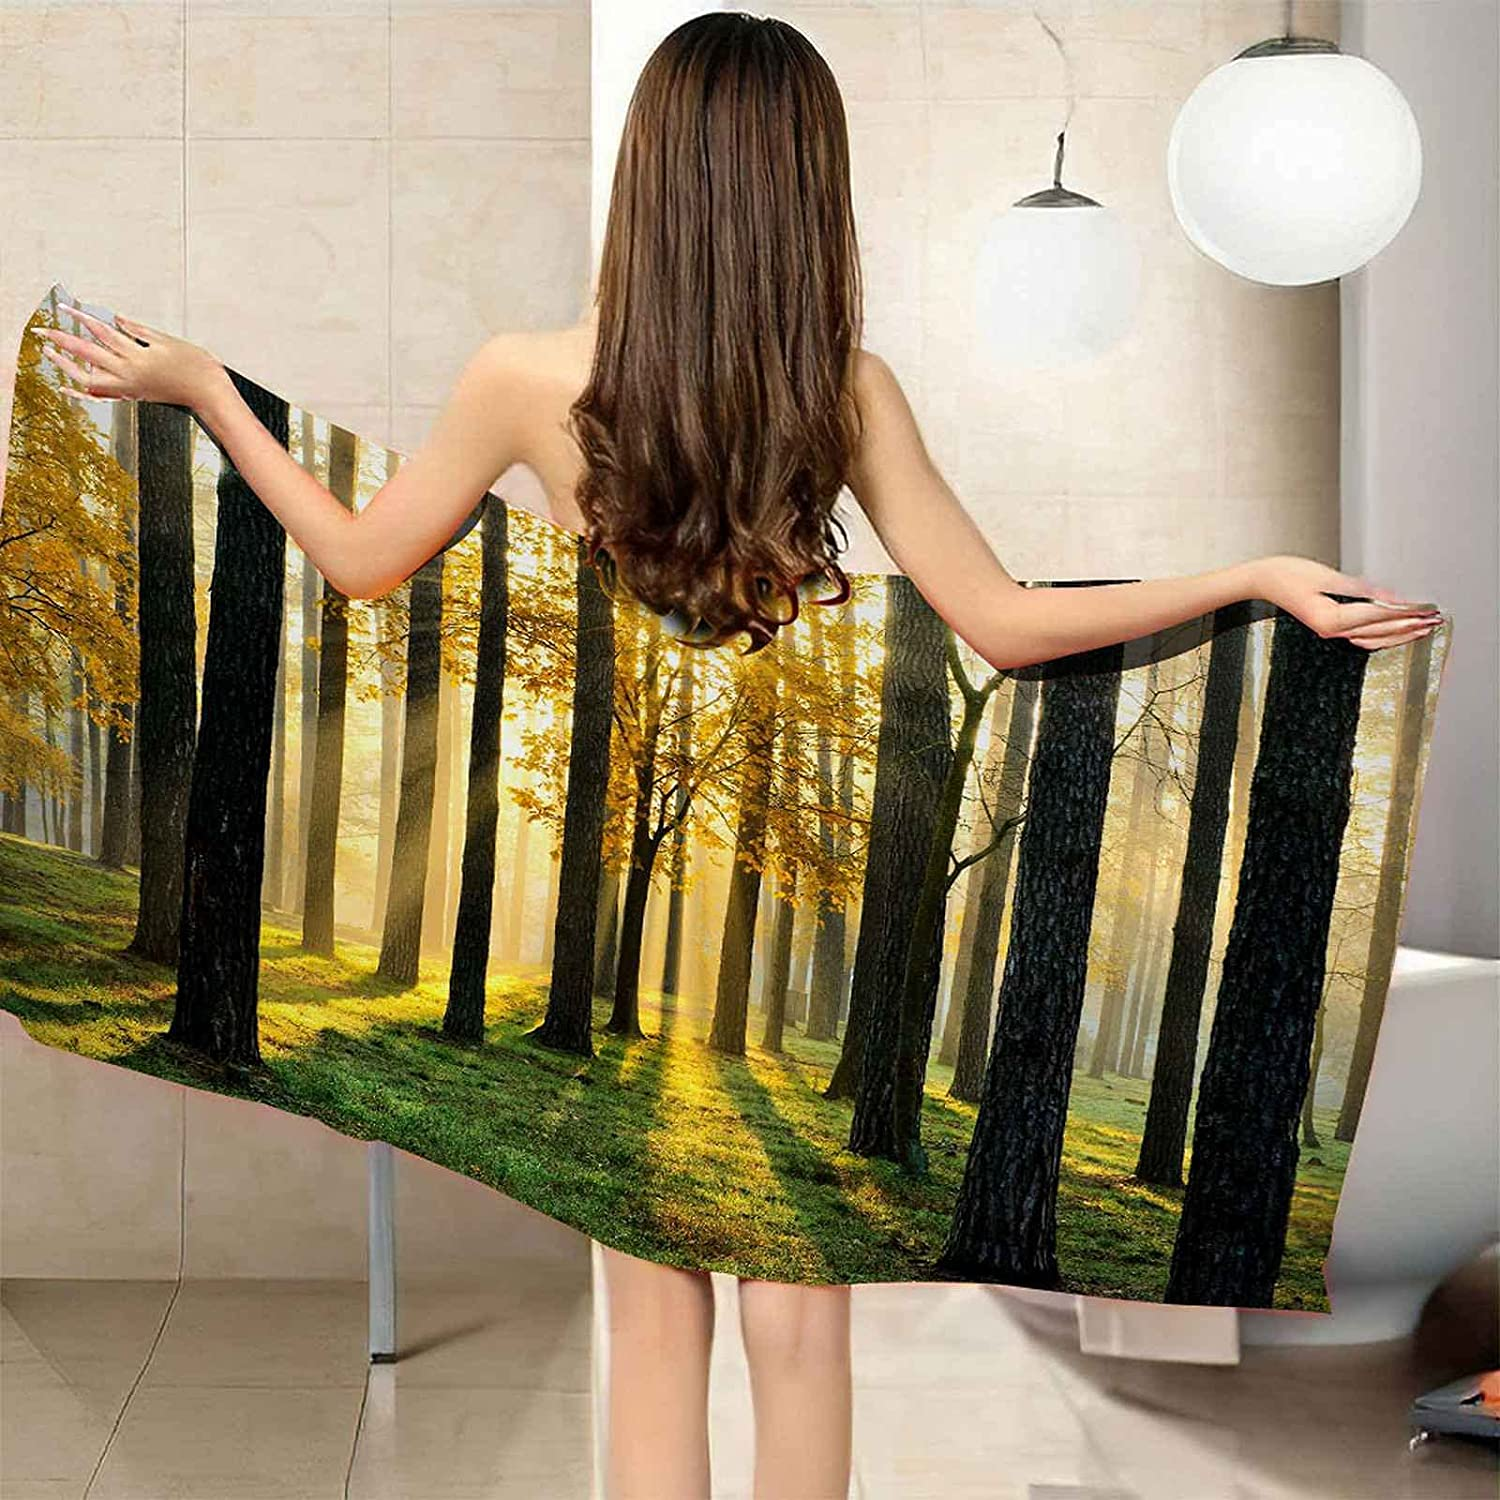 IRUAIF Microfiber Beach Towel Limited price sale Early Morning Landscape 78. Forest OFFicial shop